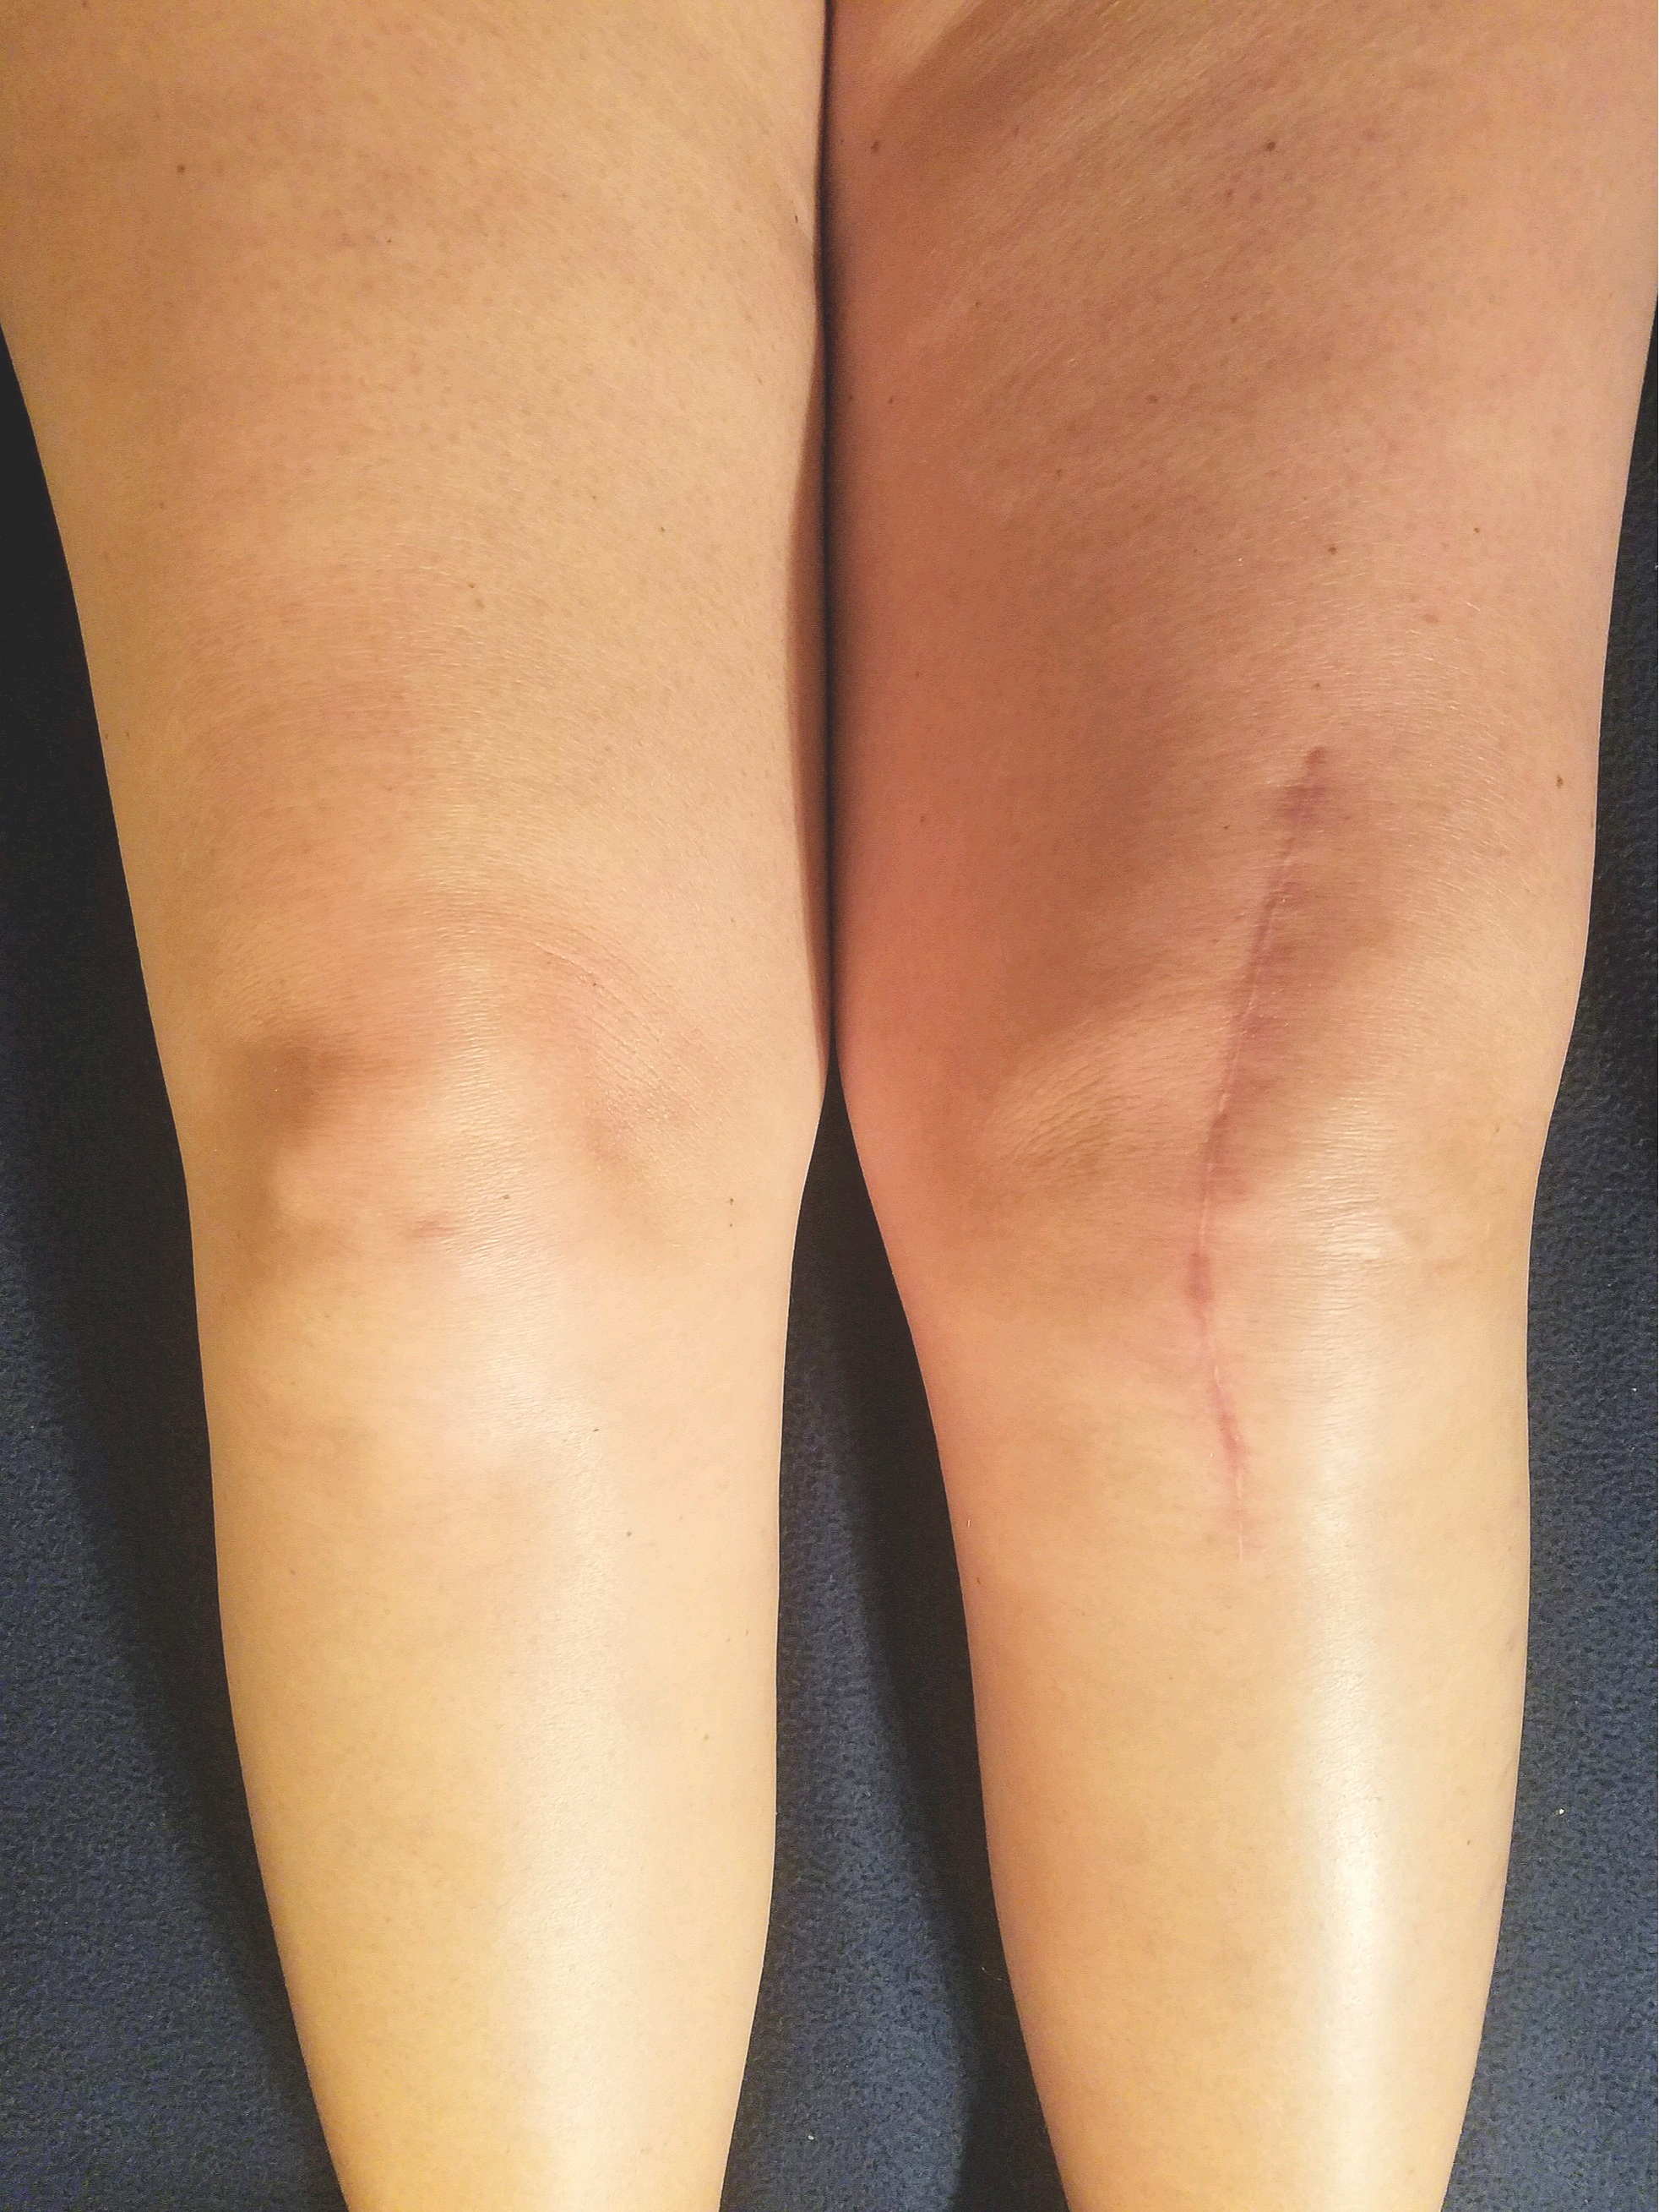 Incision length for Total Knee Arthoplasty (Knee Replacement)